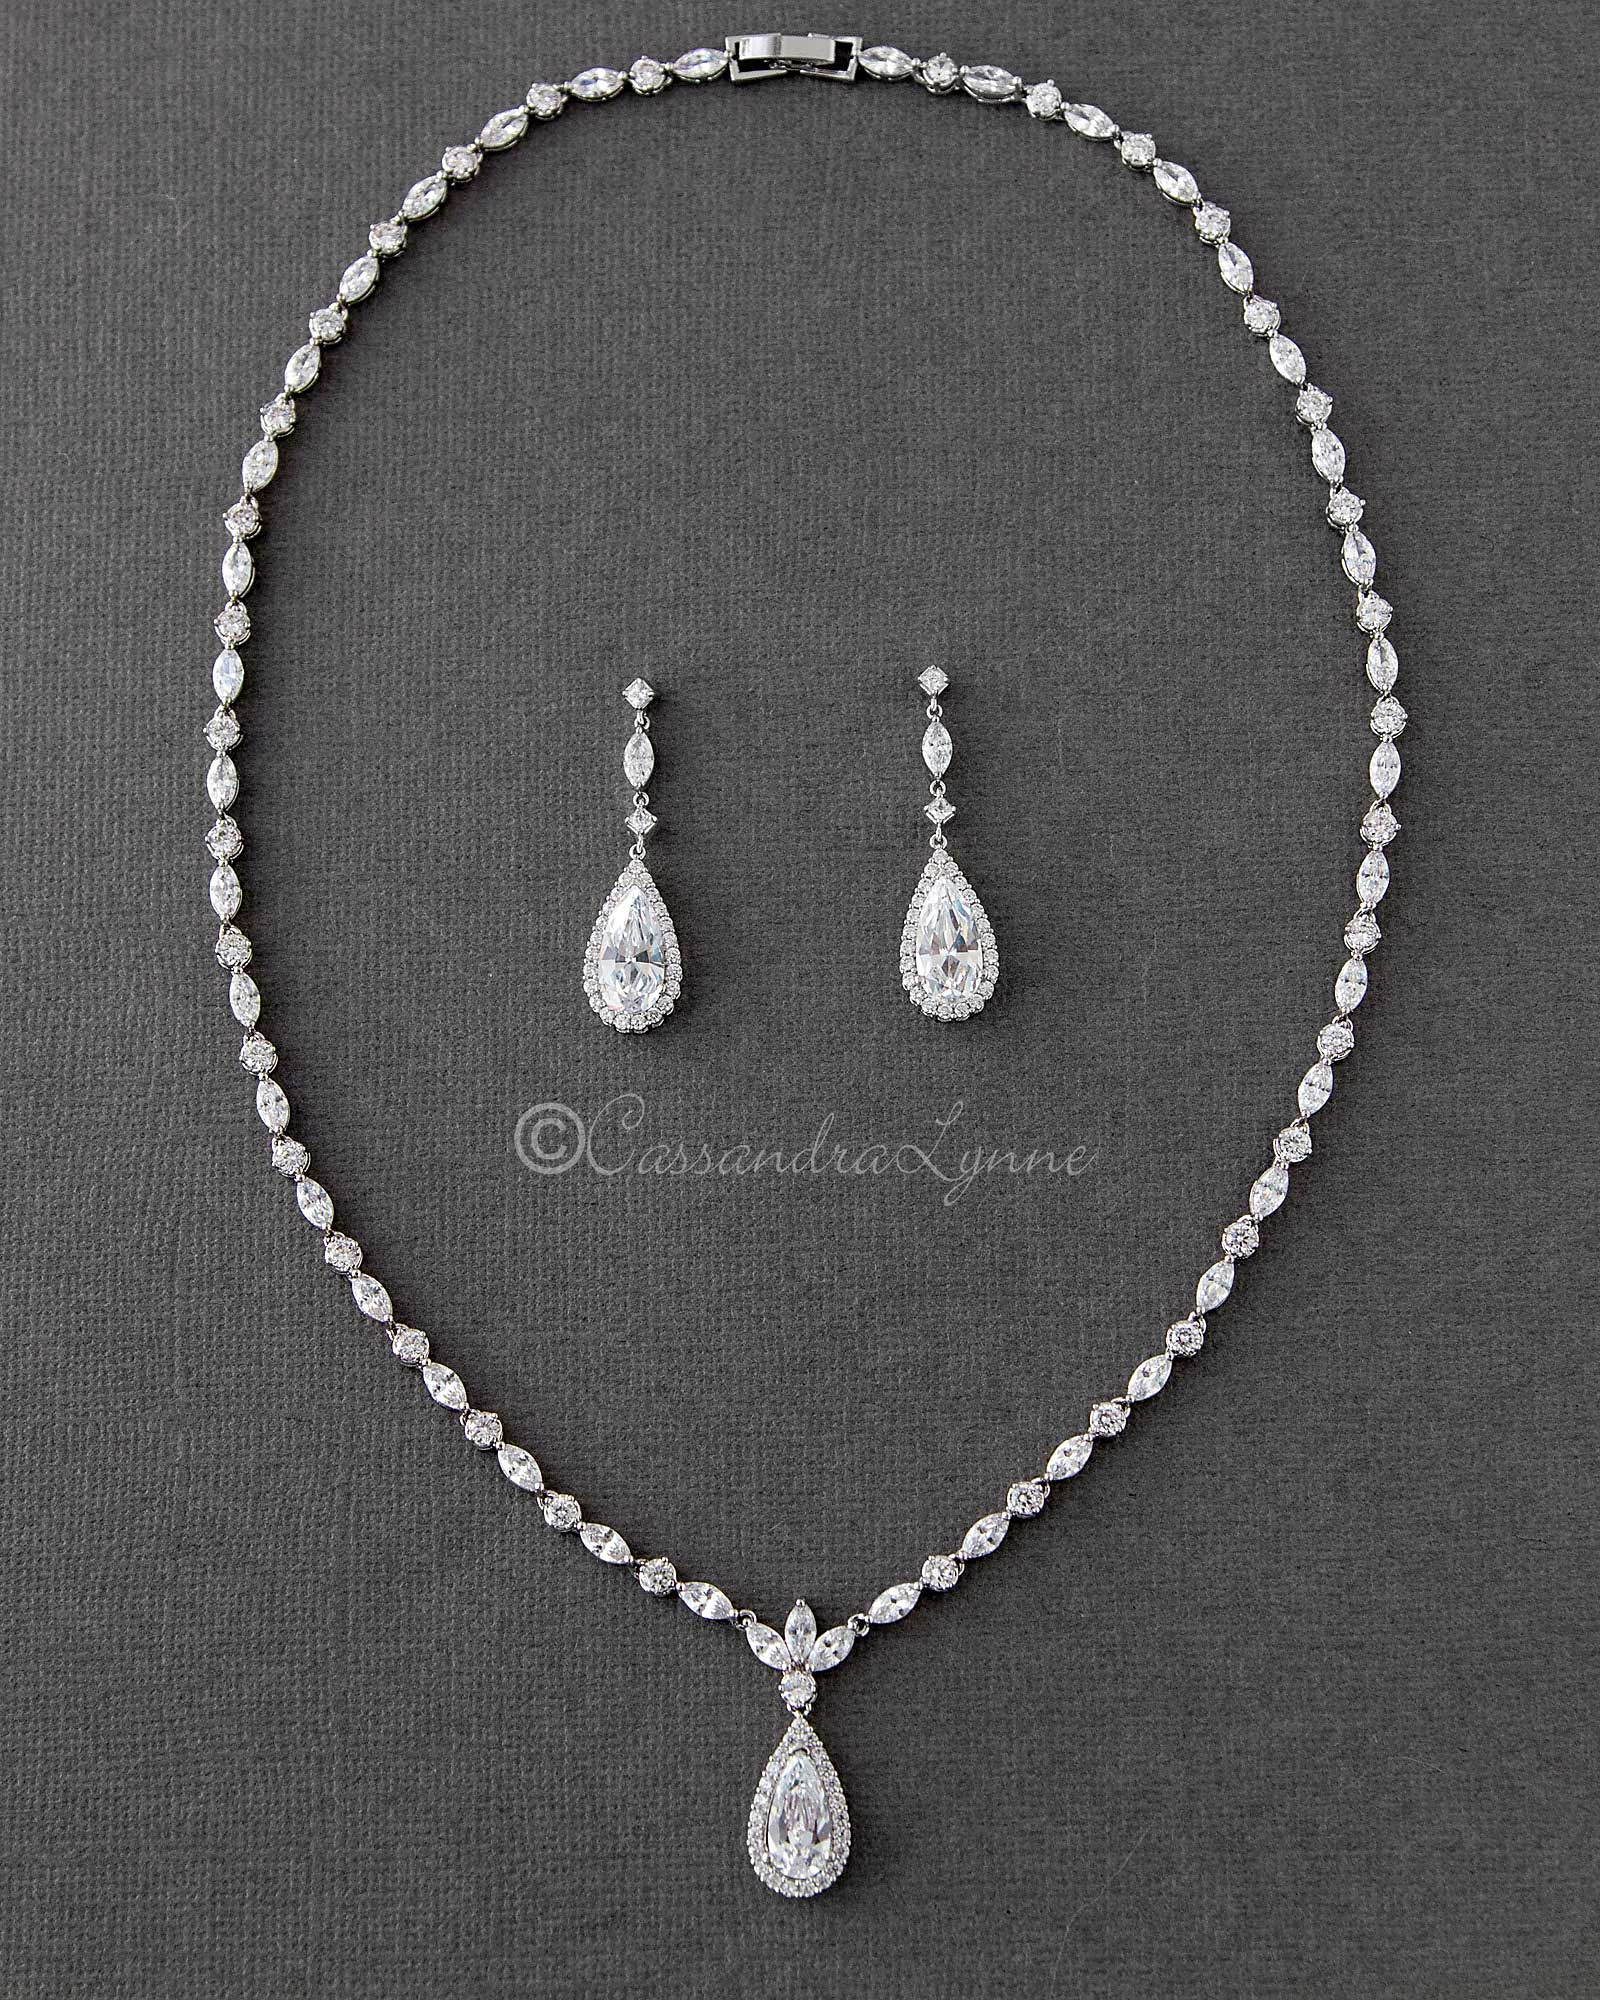 Sterling Silver CZ Necklace Set of Elongated Teardrops